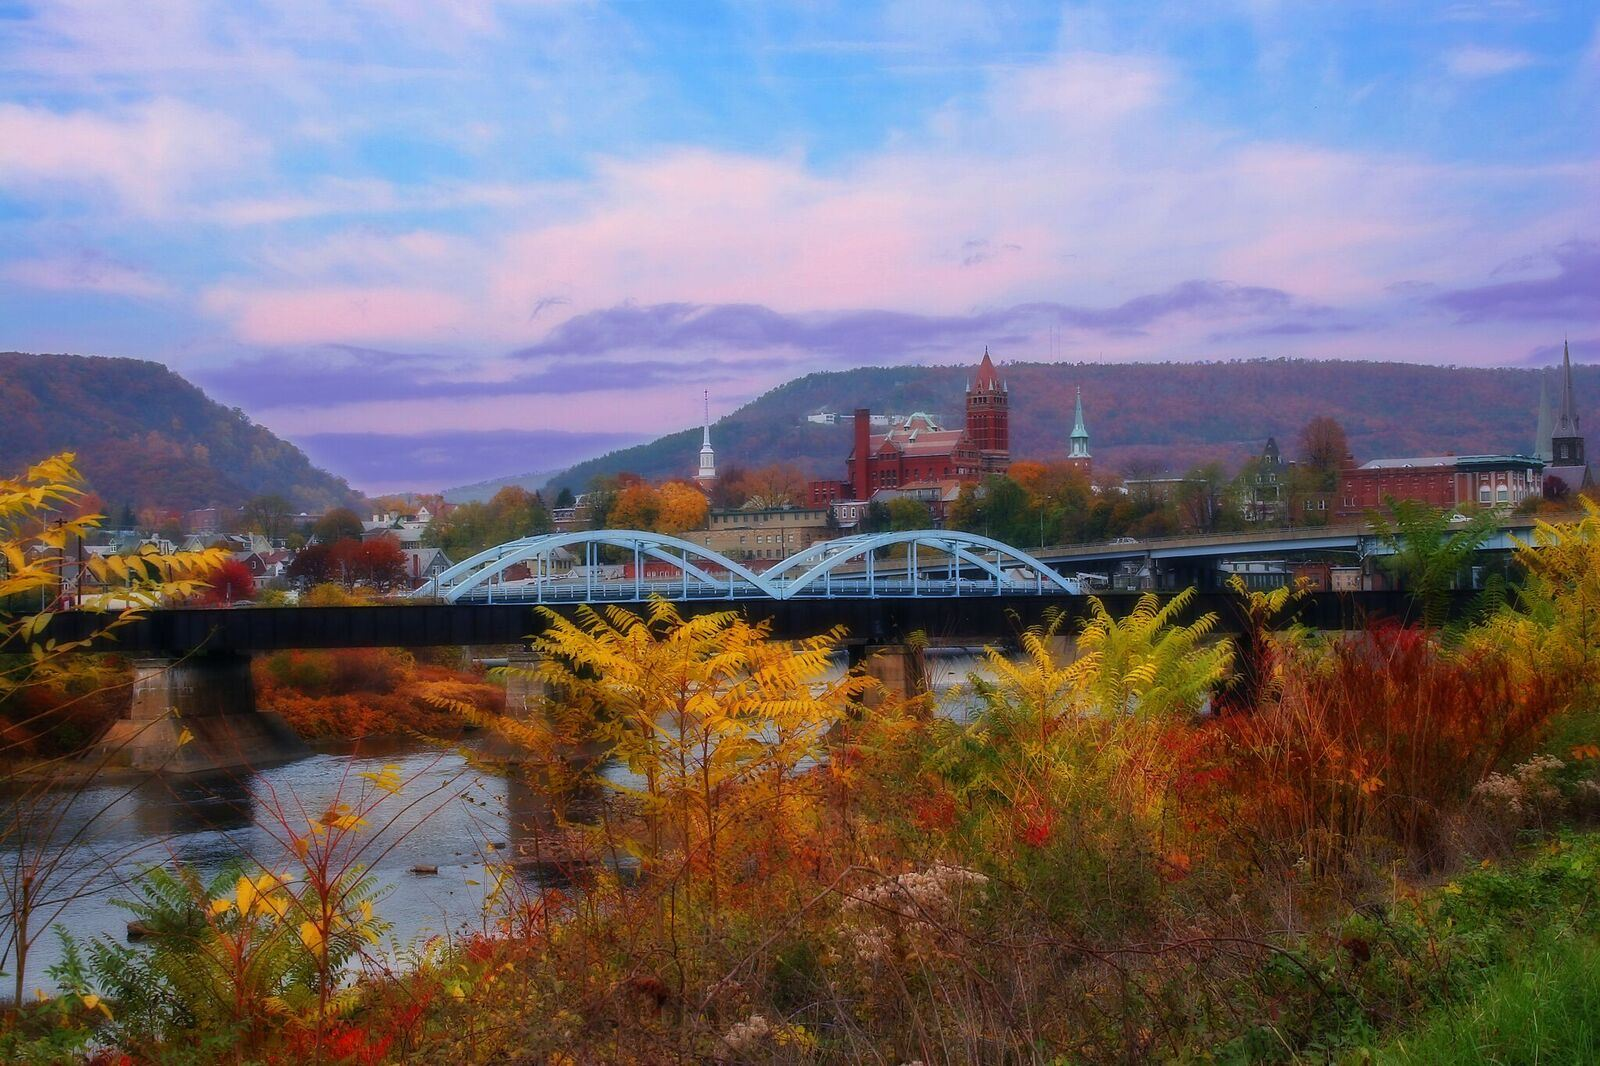 Cumberland: One of Travel Channel's 50 Most Charming Small Towns Photo